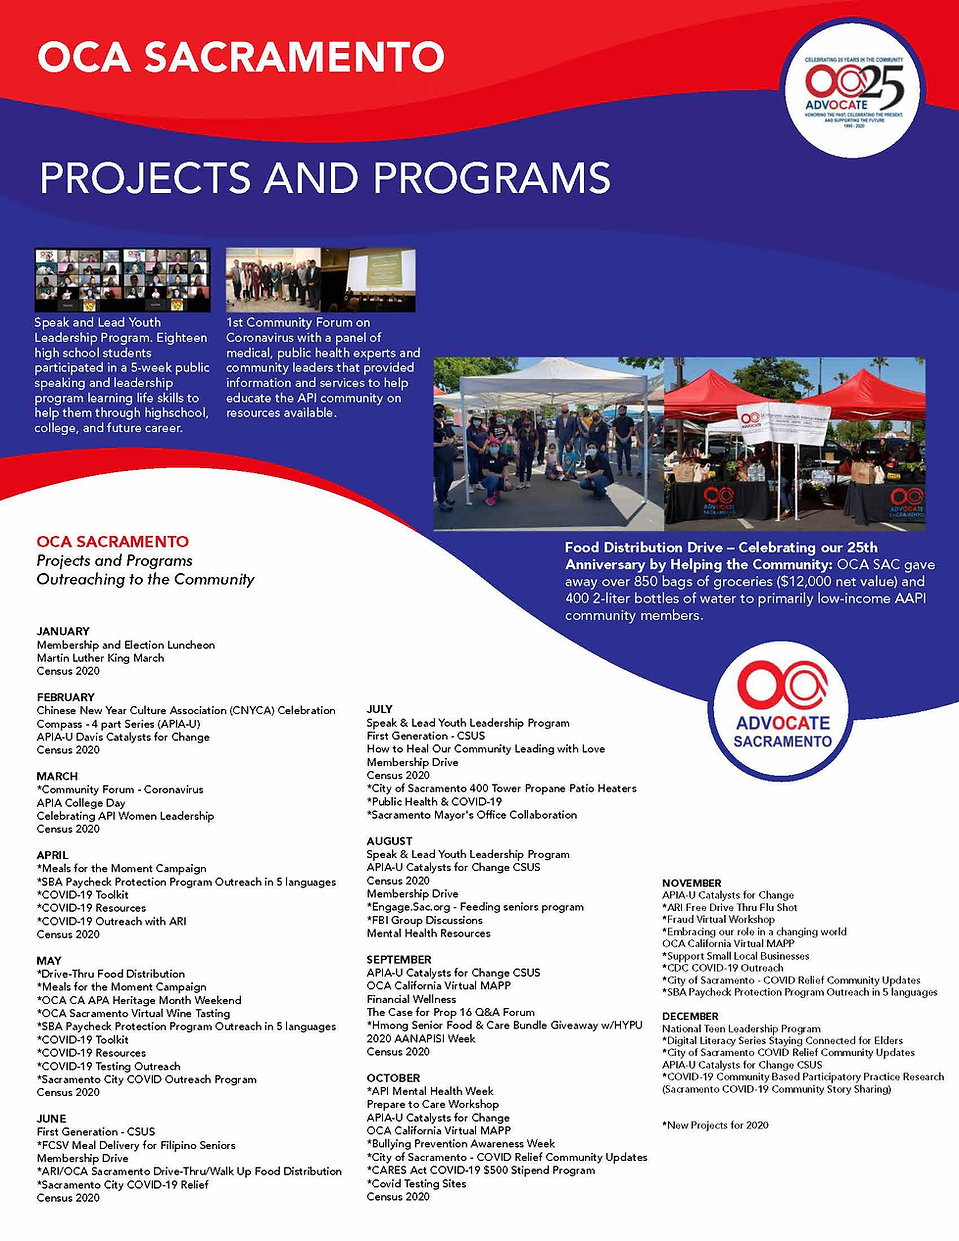 Pages from Category II - Projects and Programs SAC 2021.jpg